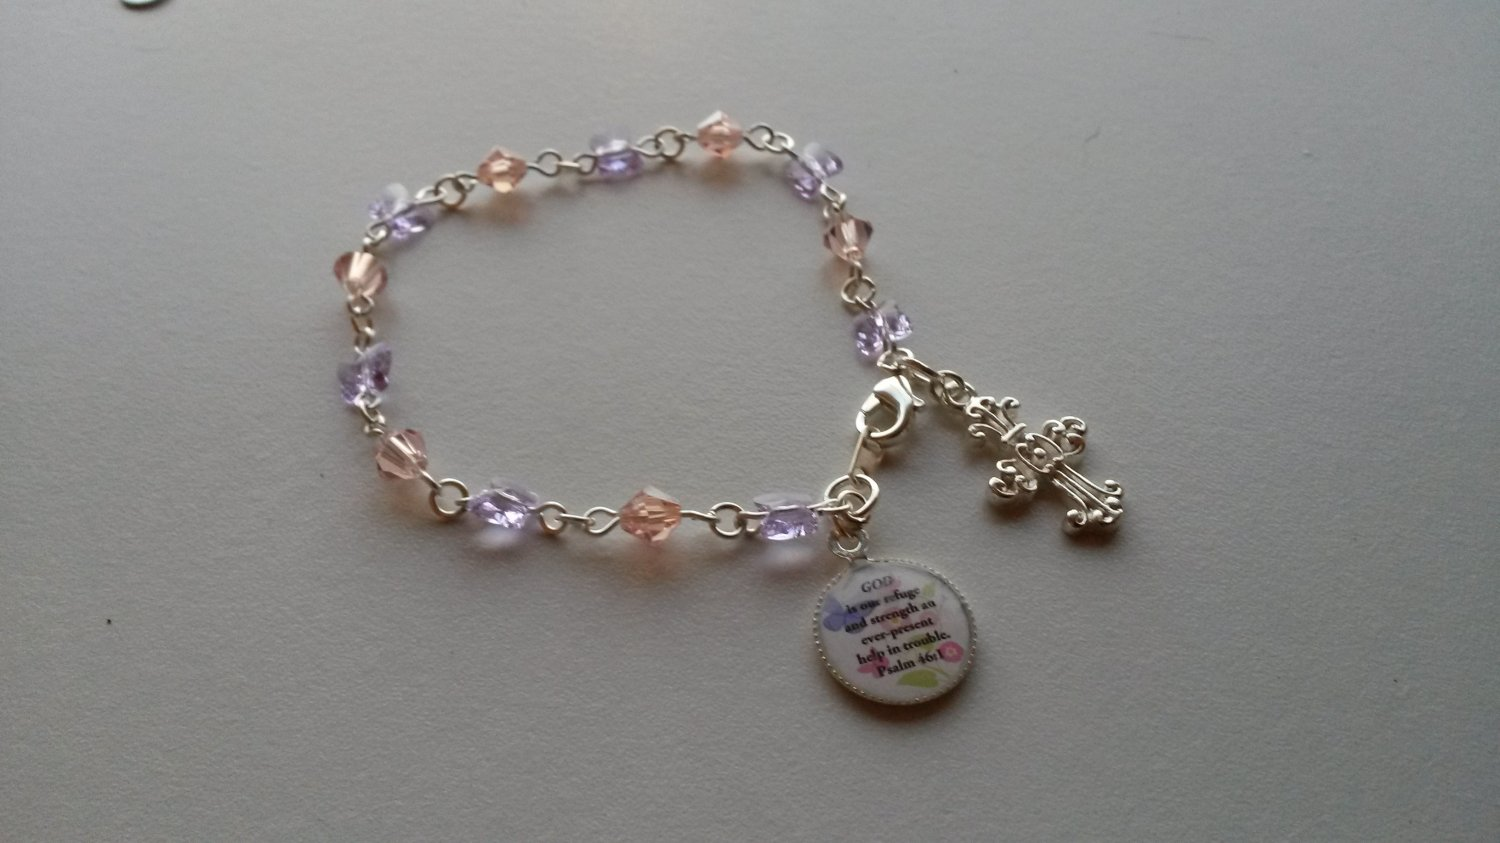 A pretty Swarovski butterflies and crystals bracelet w/Bible verse charm